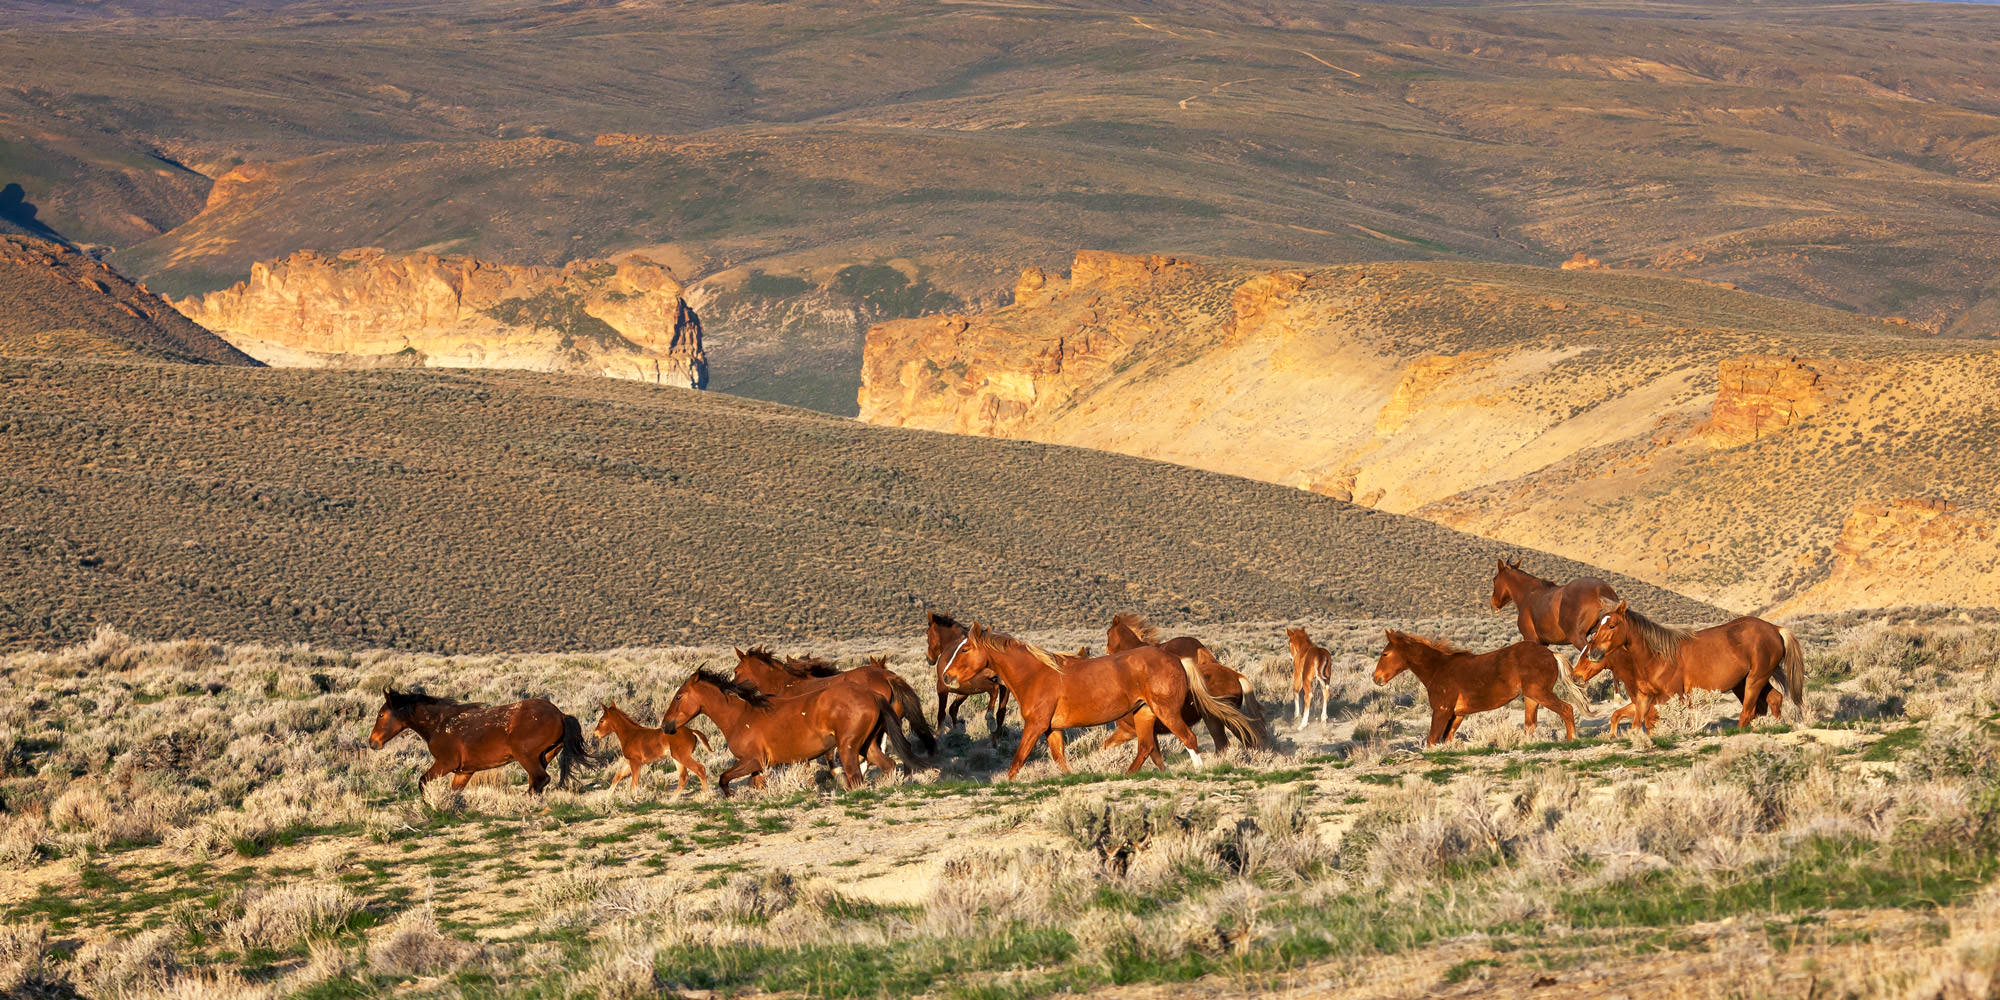 Horse, Wild Horse, Wyoming, limited edition, photograph fine art, wildlife, photo